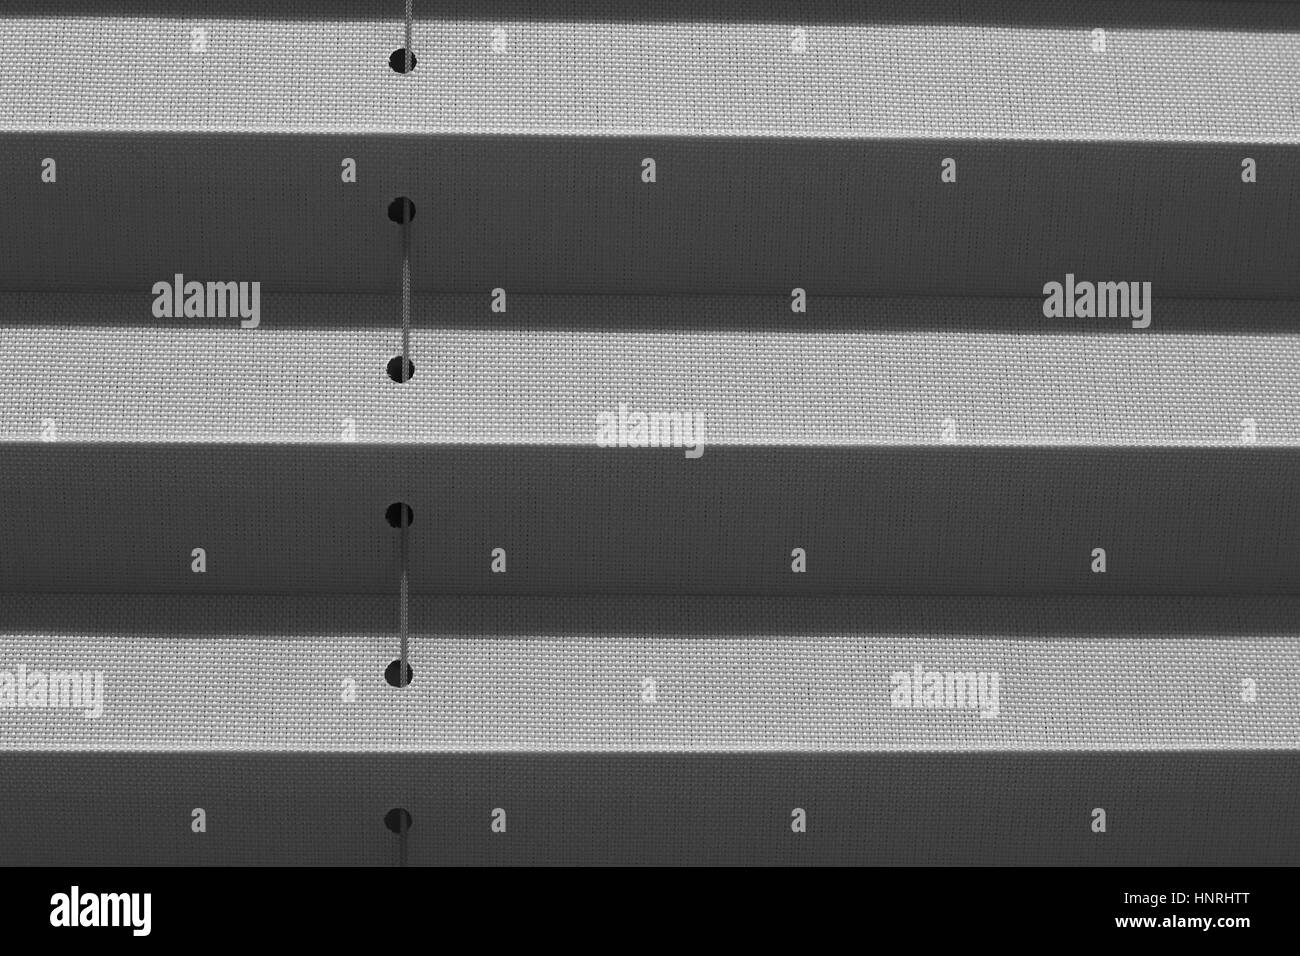 Window gray pleated blind close up with details in home interior. Structure and texture of fabric background. - Stock Image